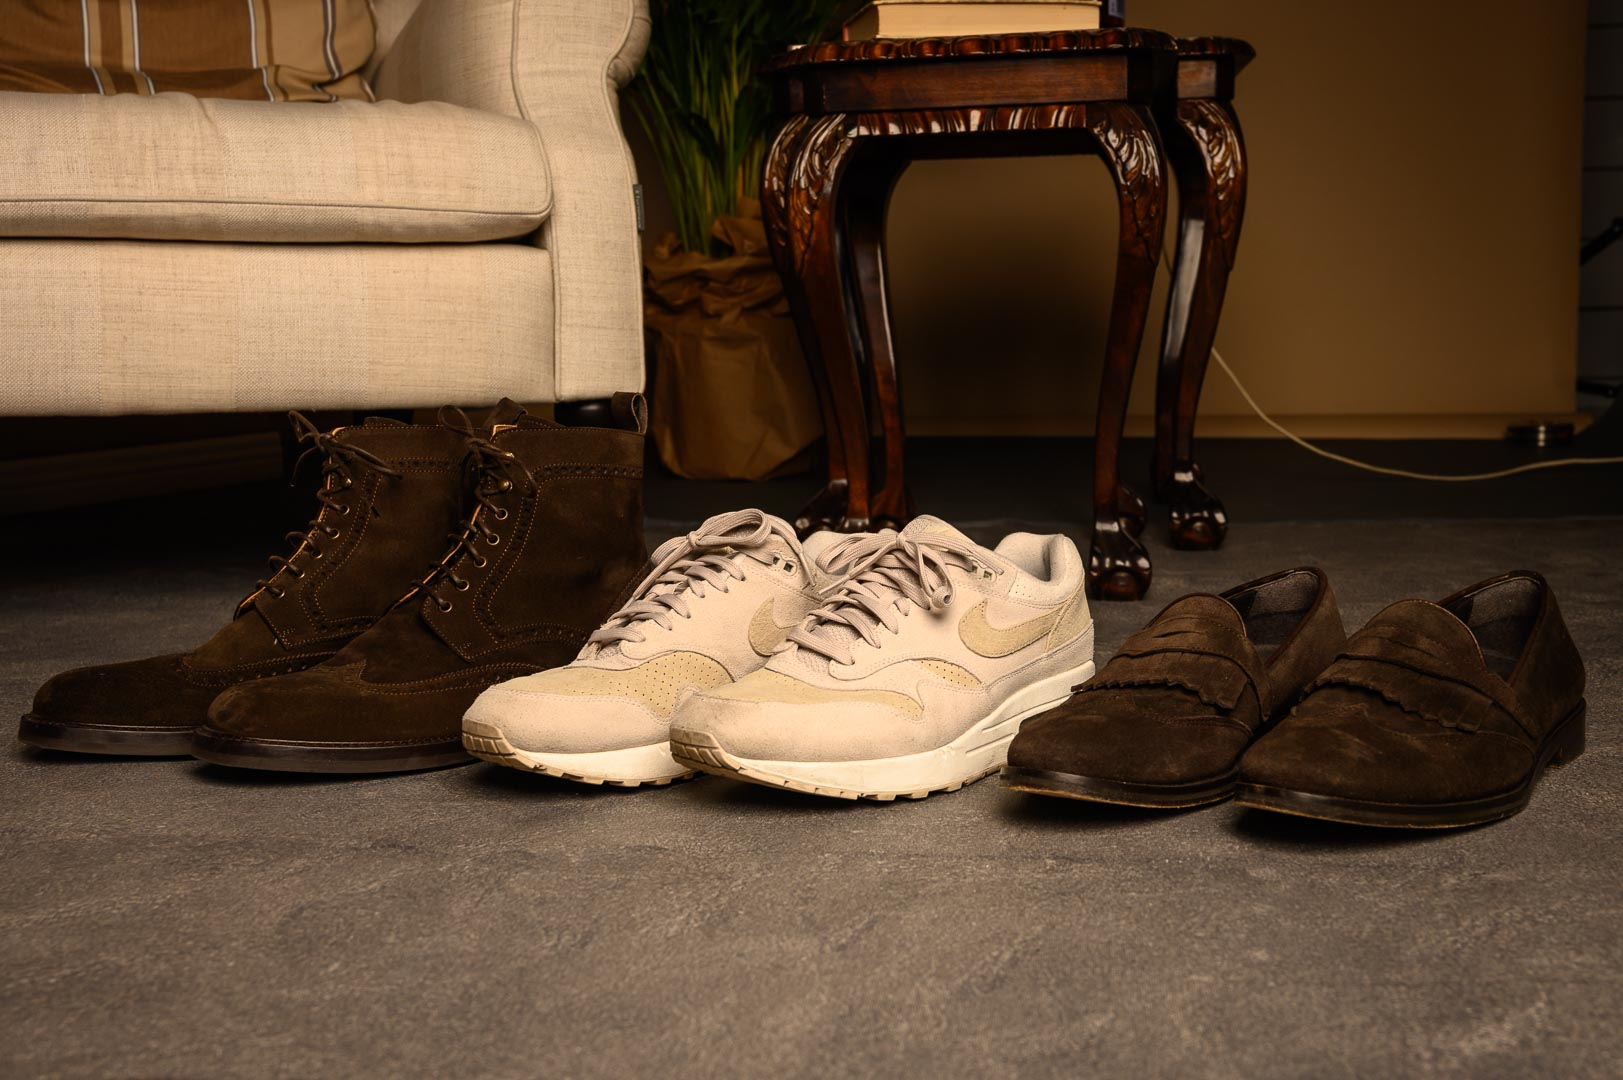 Suede boots, Nike Air Max 1s and suede loafers